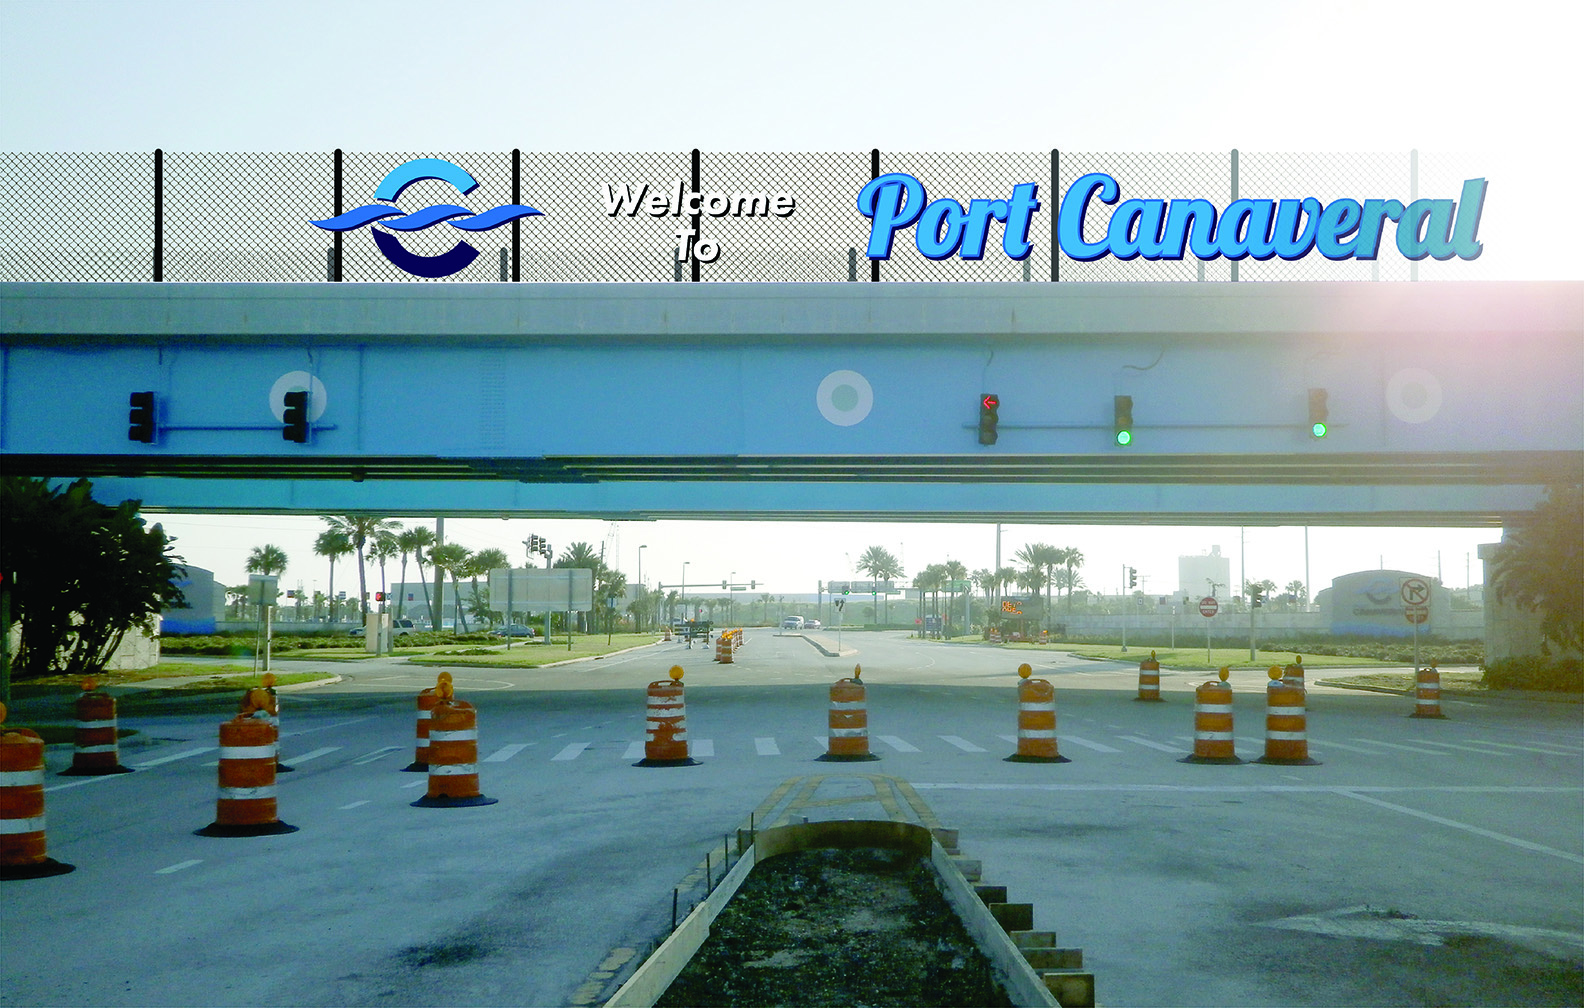 Canaveral Port Authority - Overpass Signage - Site 1 - Design 1, Entering